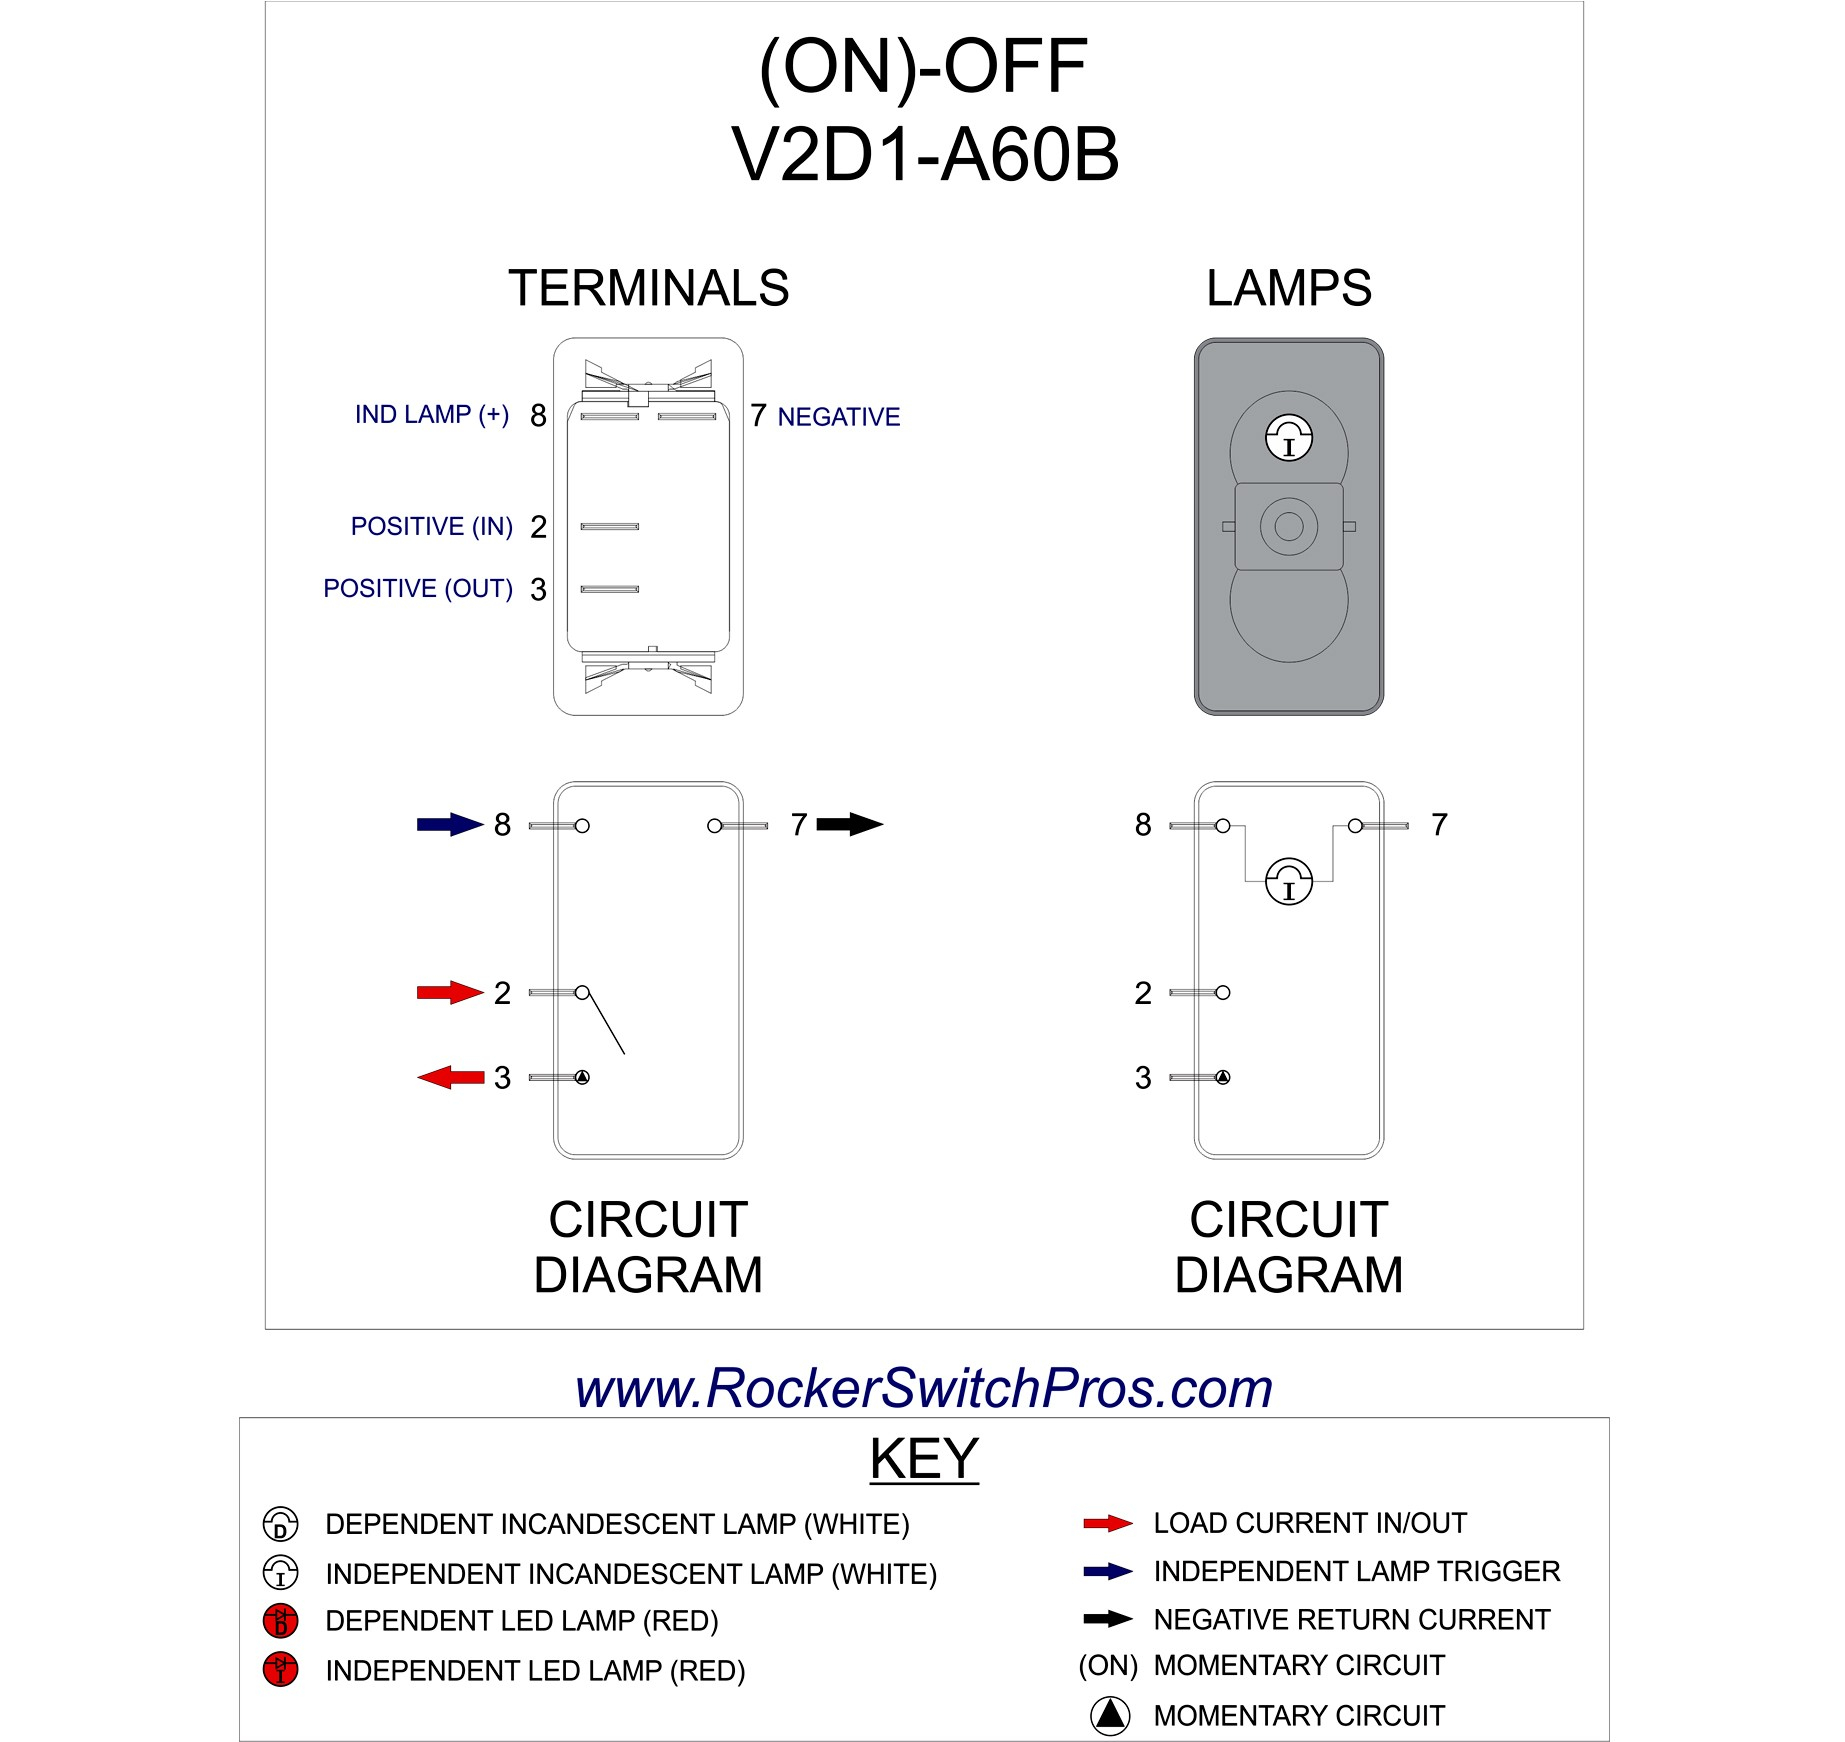 spdt toggle switch wiring diagram Download-Double Pole Double Throw Switch Wiring Diagram Wiring Diagram Momentary Switch Inspiration Fresh Spdt toggle Switch 9-a